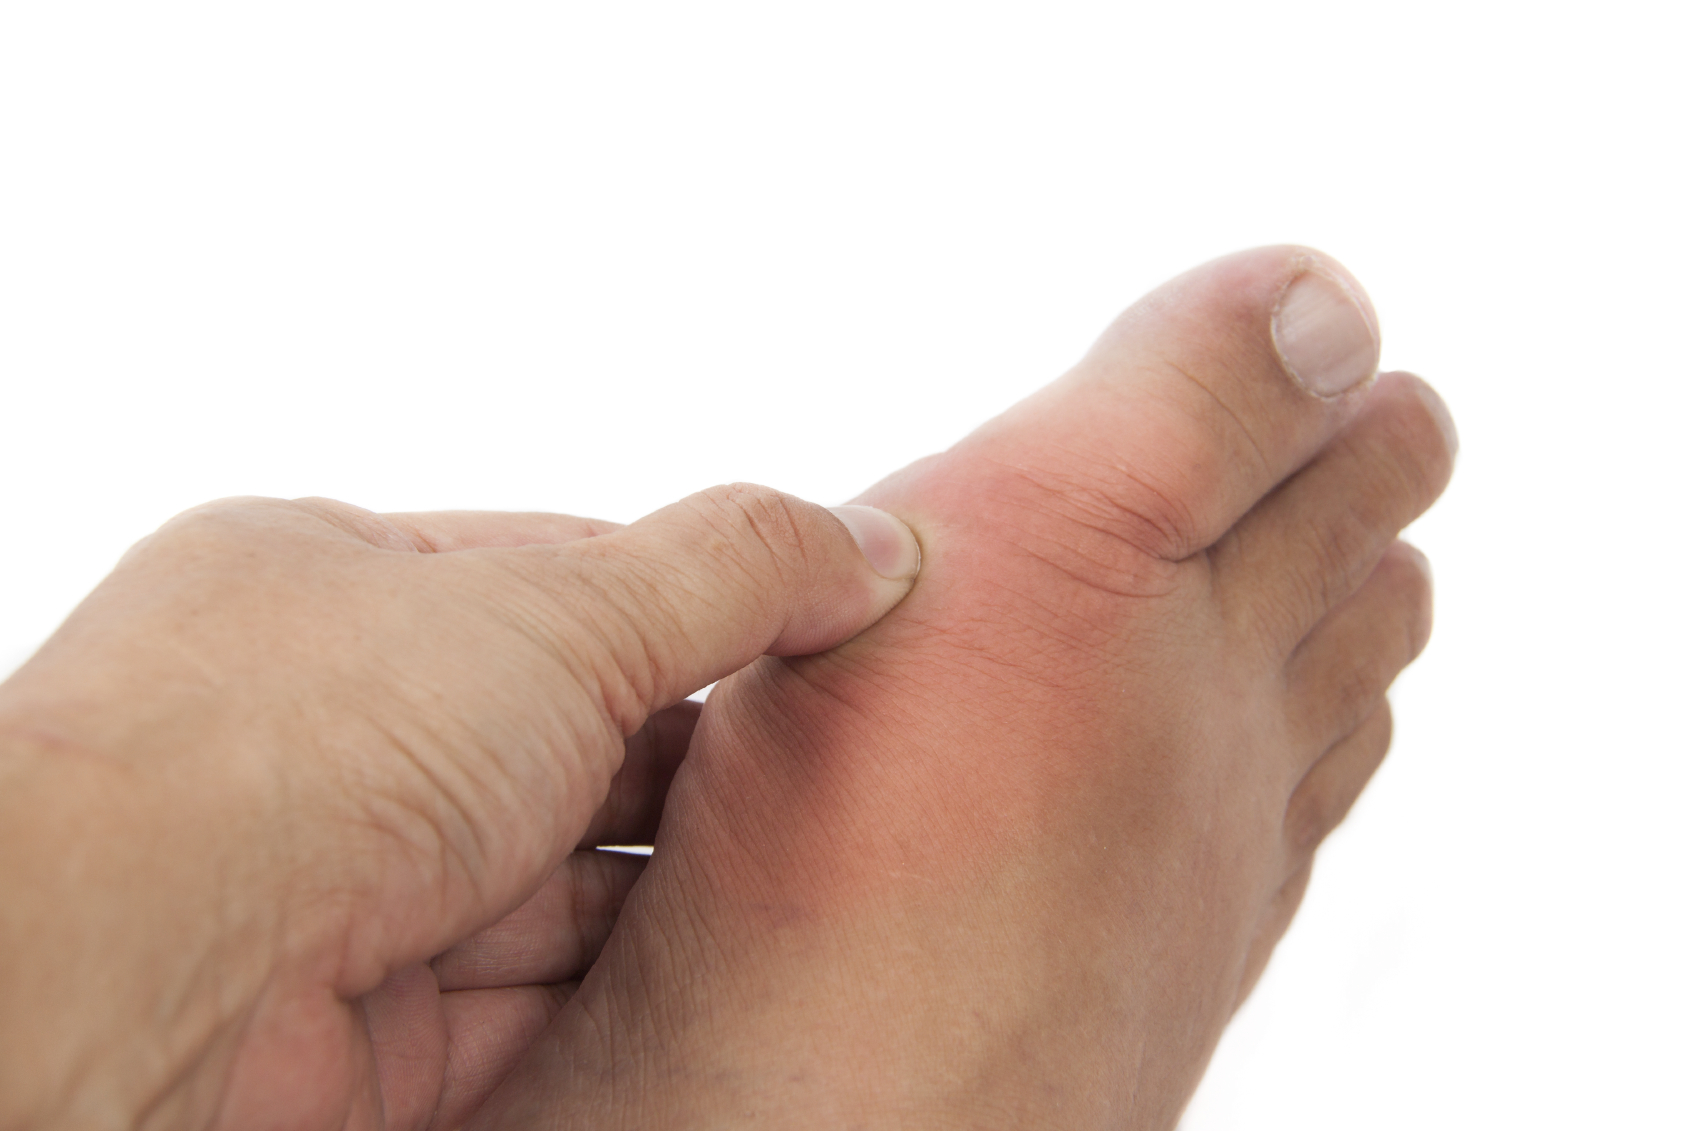 Inspecting symptoms of gout in the big toe